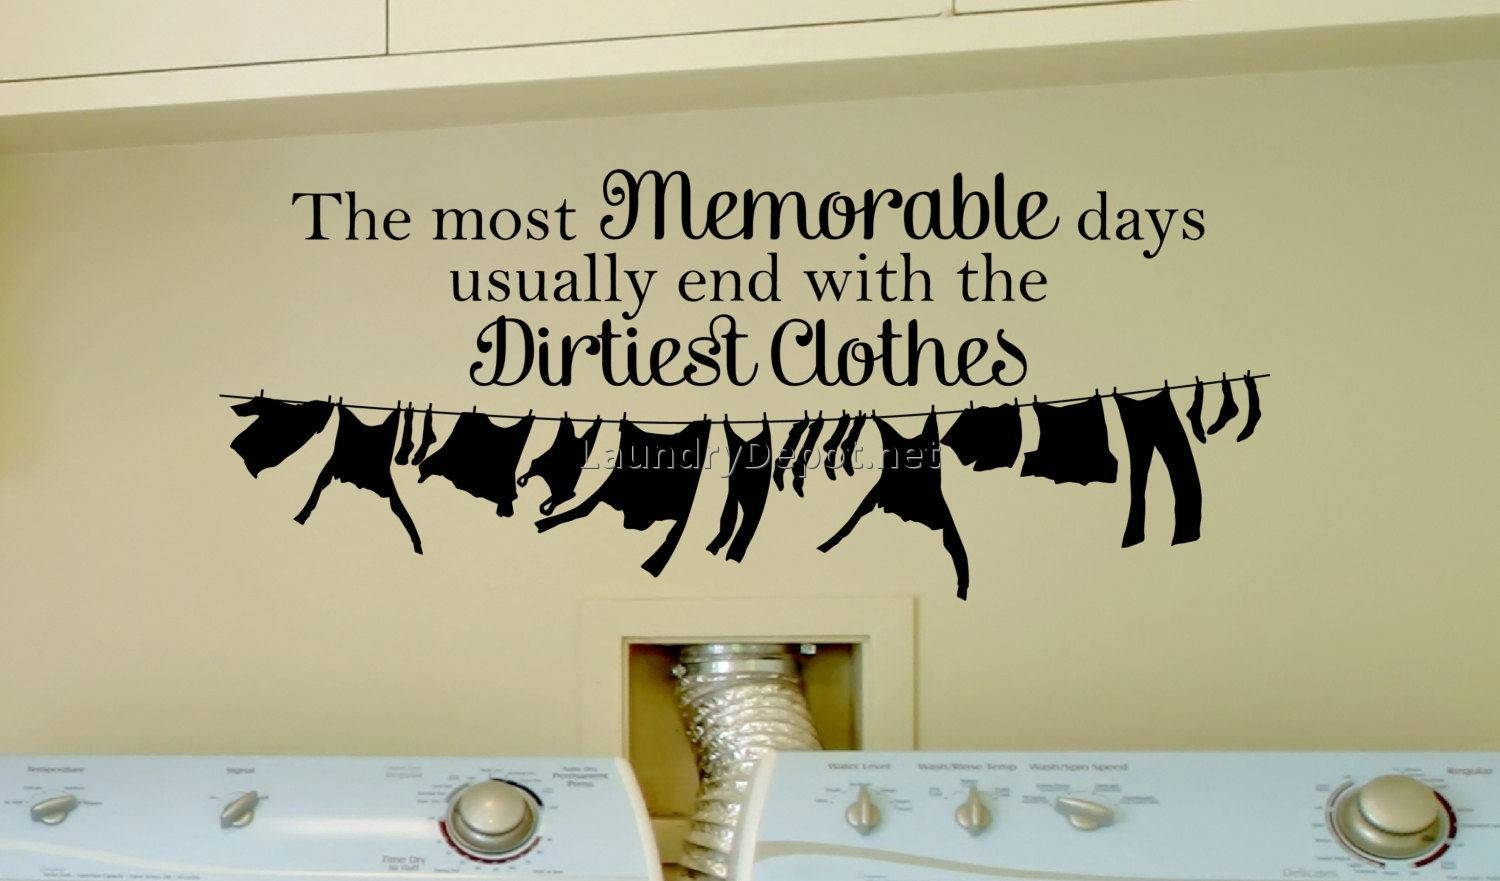 Laundry Room Wall Art Decor 1 | Best Laundry Room Ideas Decor Intended For Most Recently Released Laundry Room Wall Art Decors (View 20 of 25)